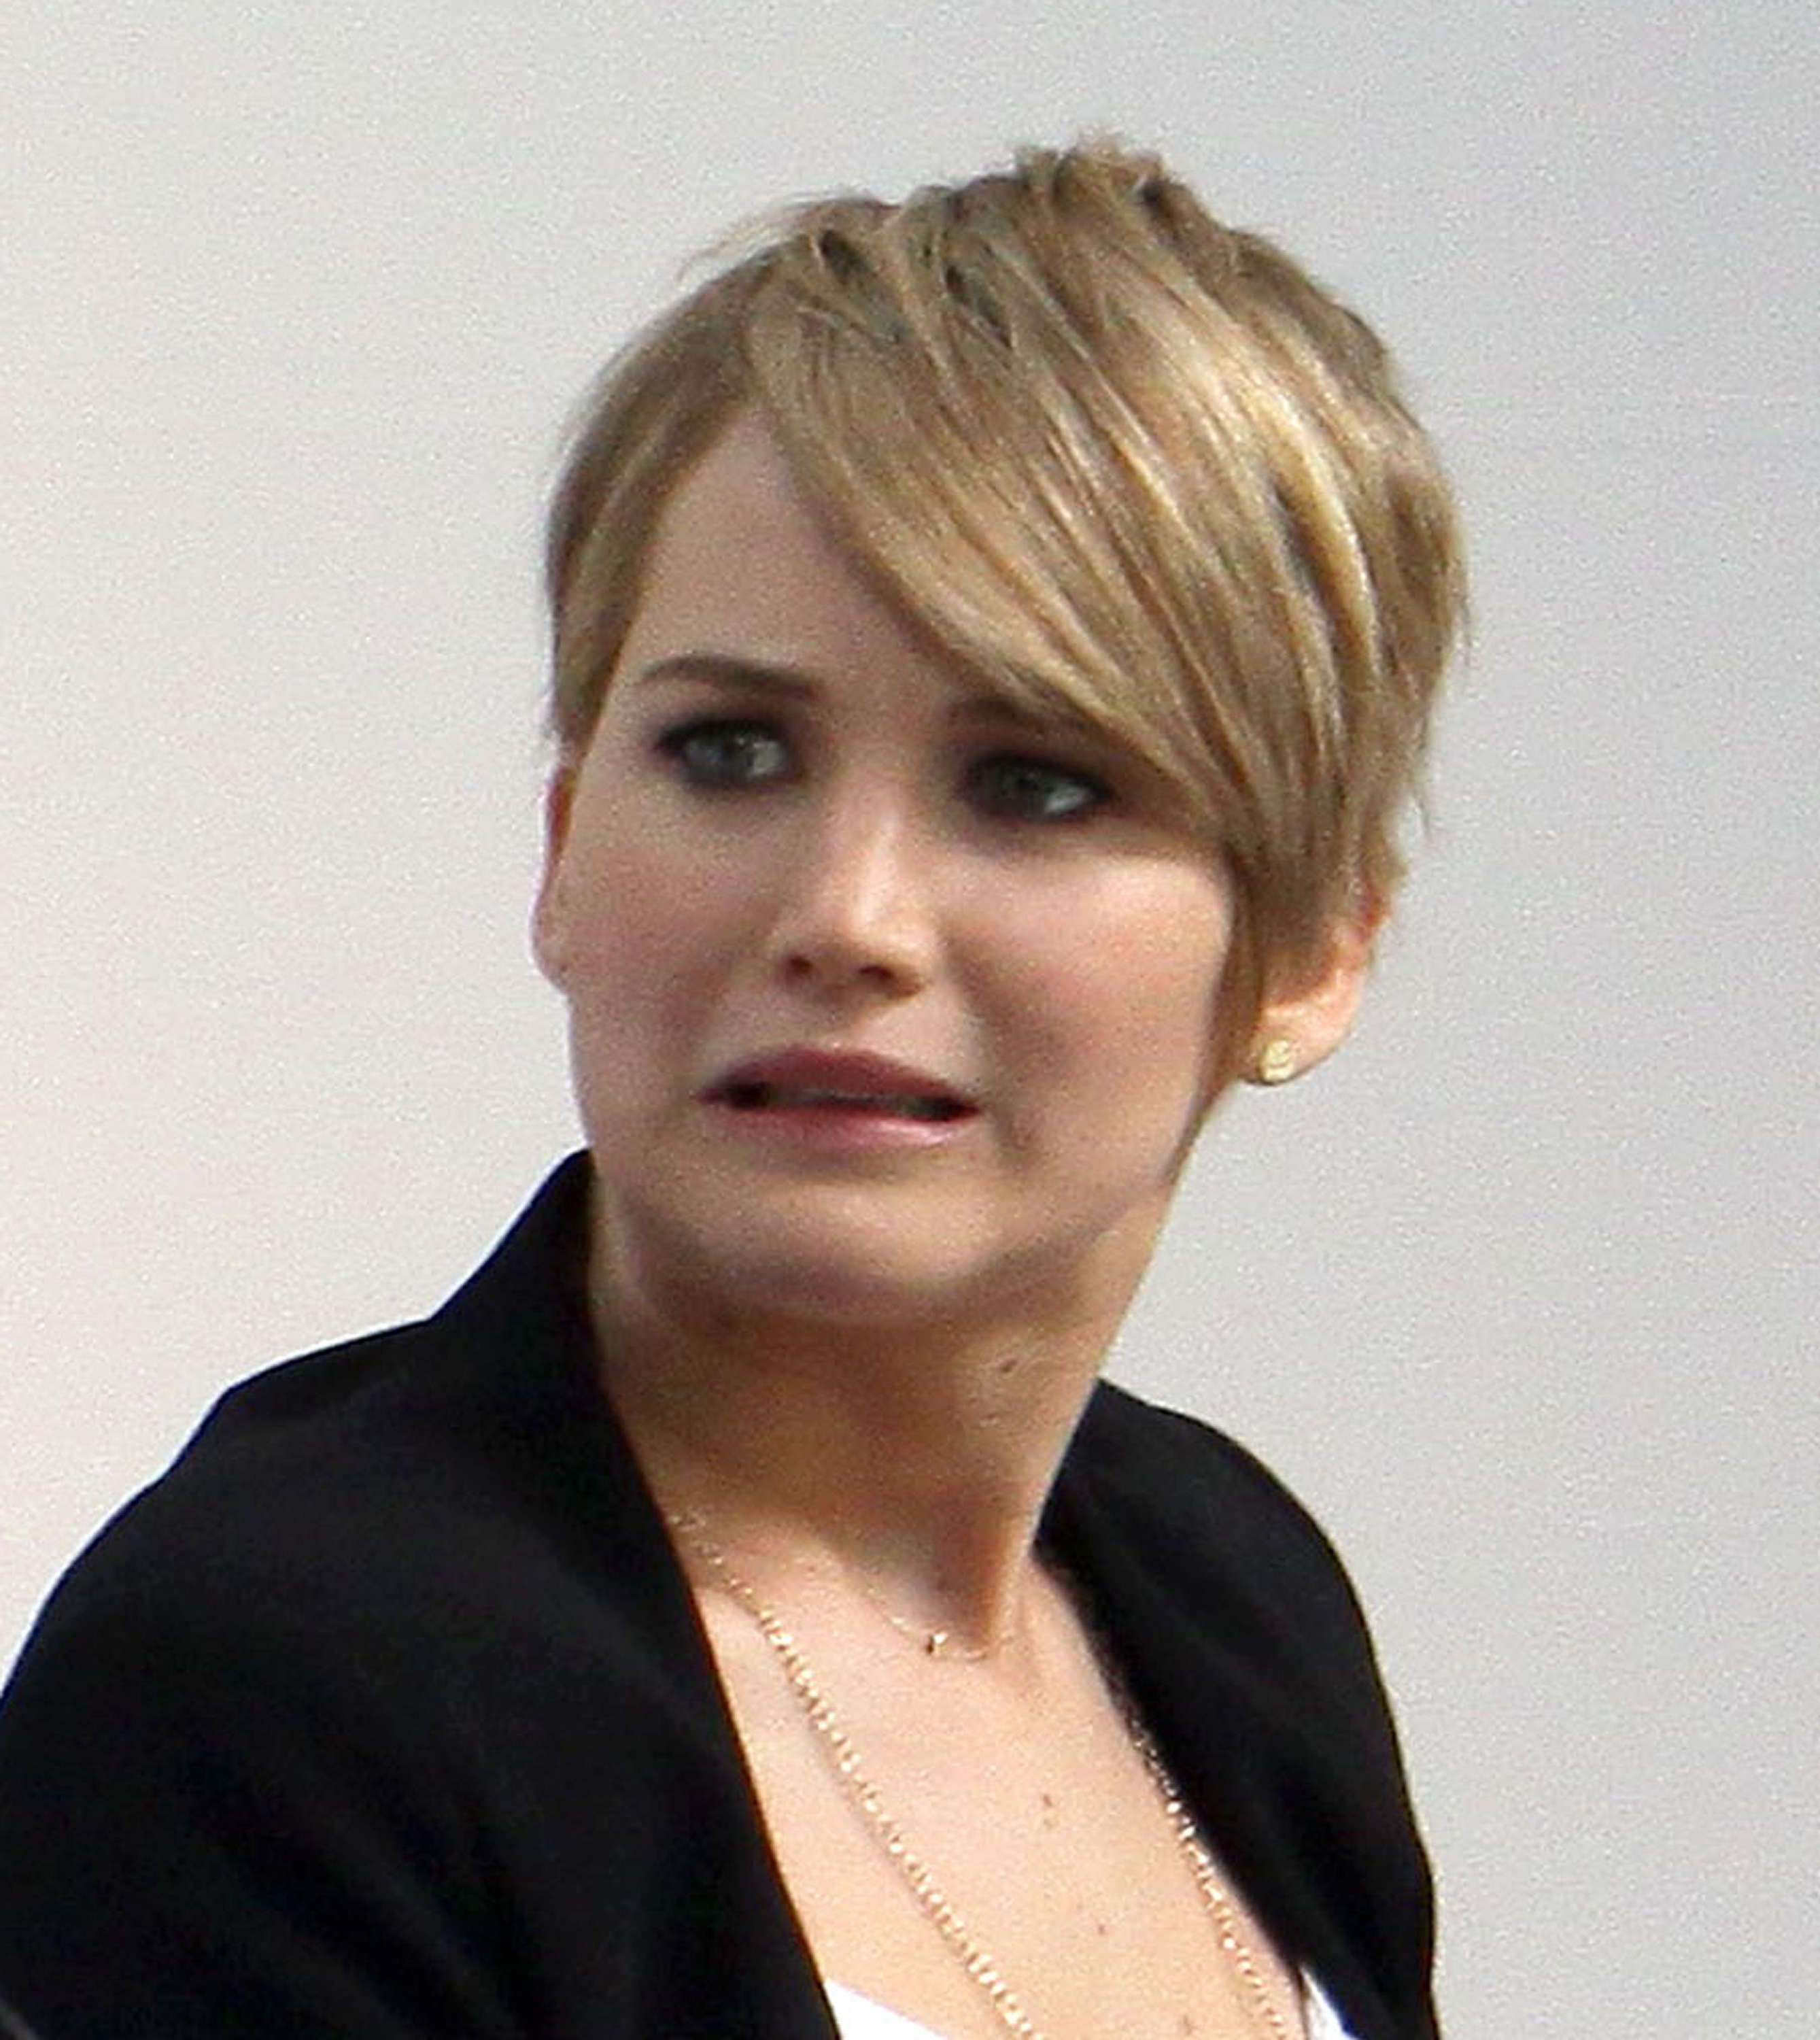 Jennifer Lawrence Shows Off Her Short Hair At Yahoo! Q&a | Oceanup With Regard To Jennifer Lawrence Short Haircuts (View 25 of 25)